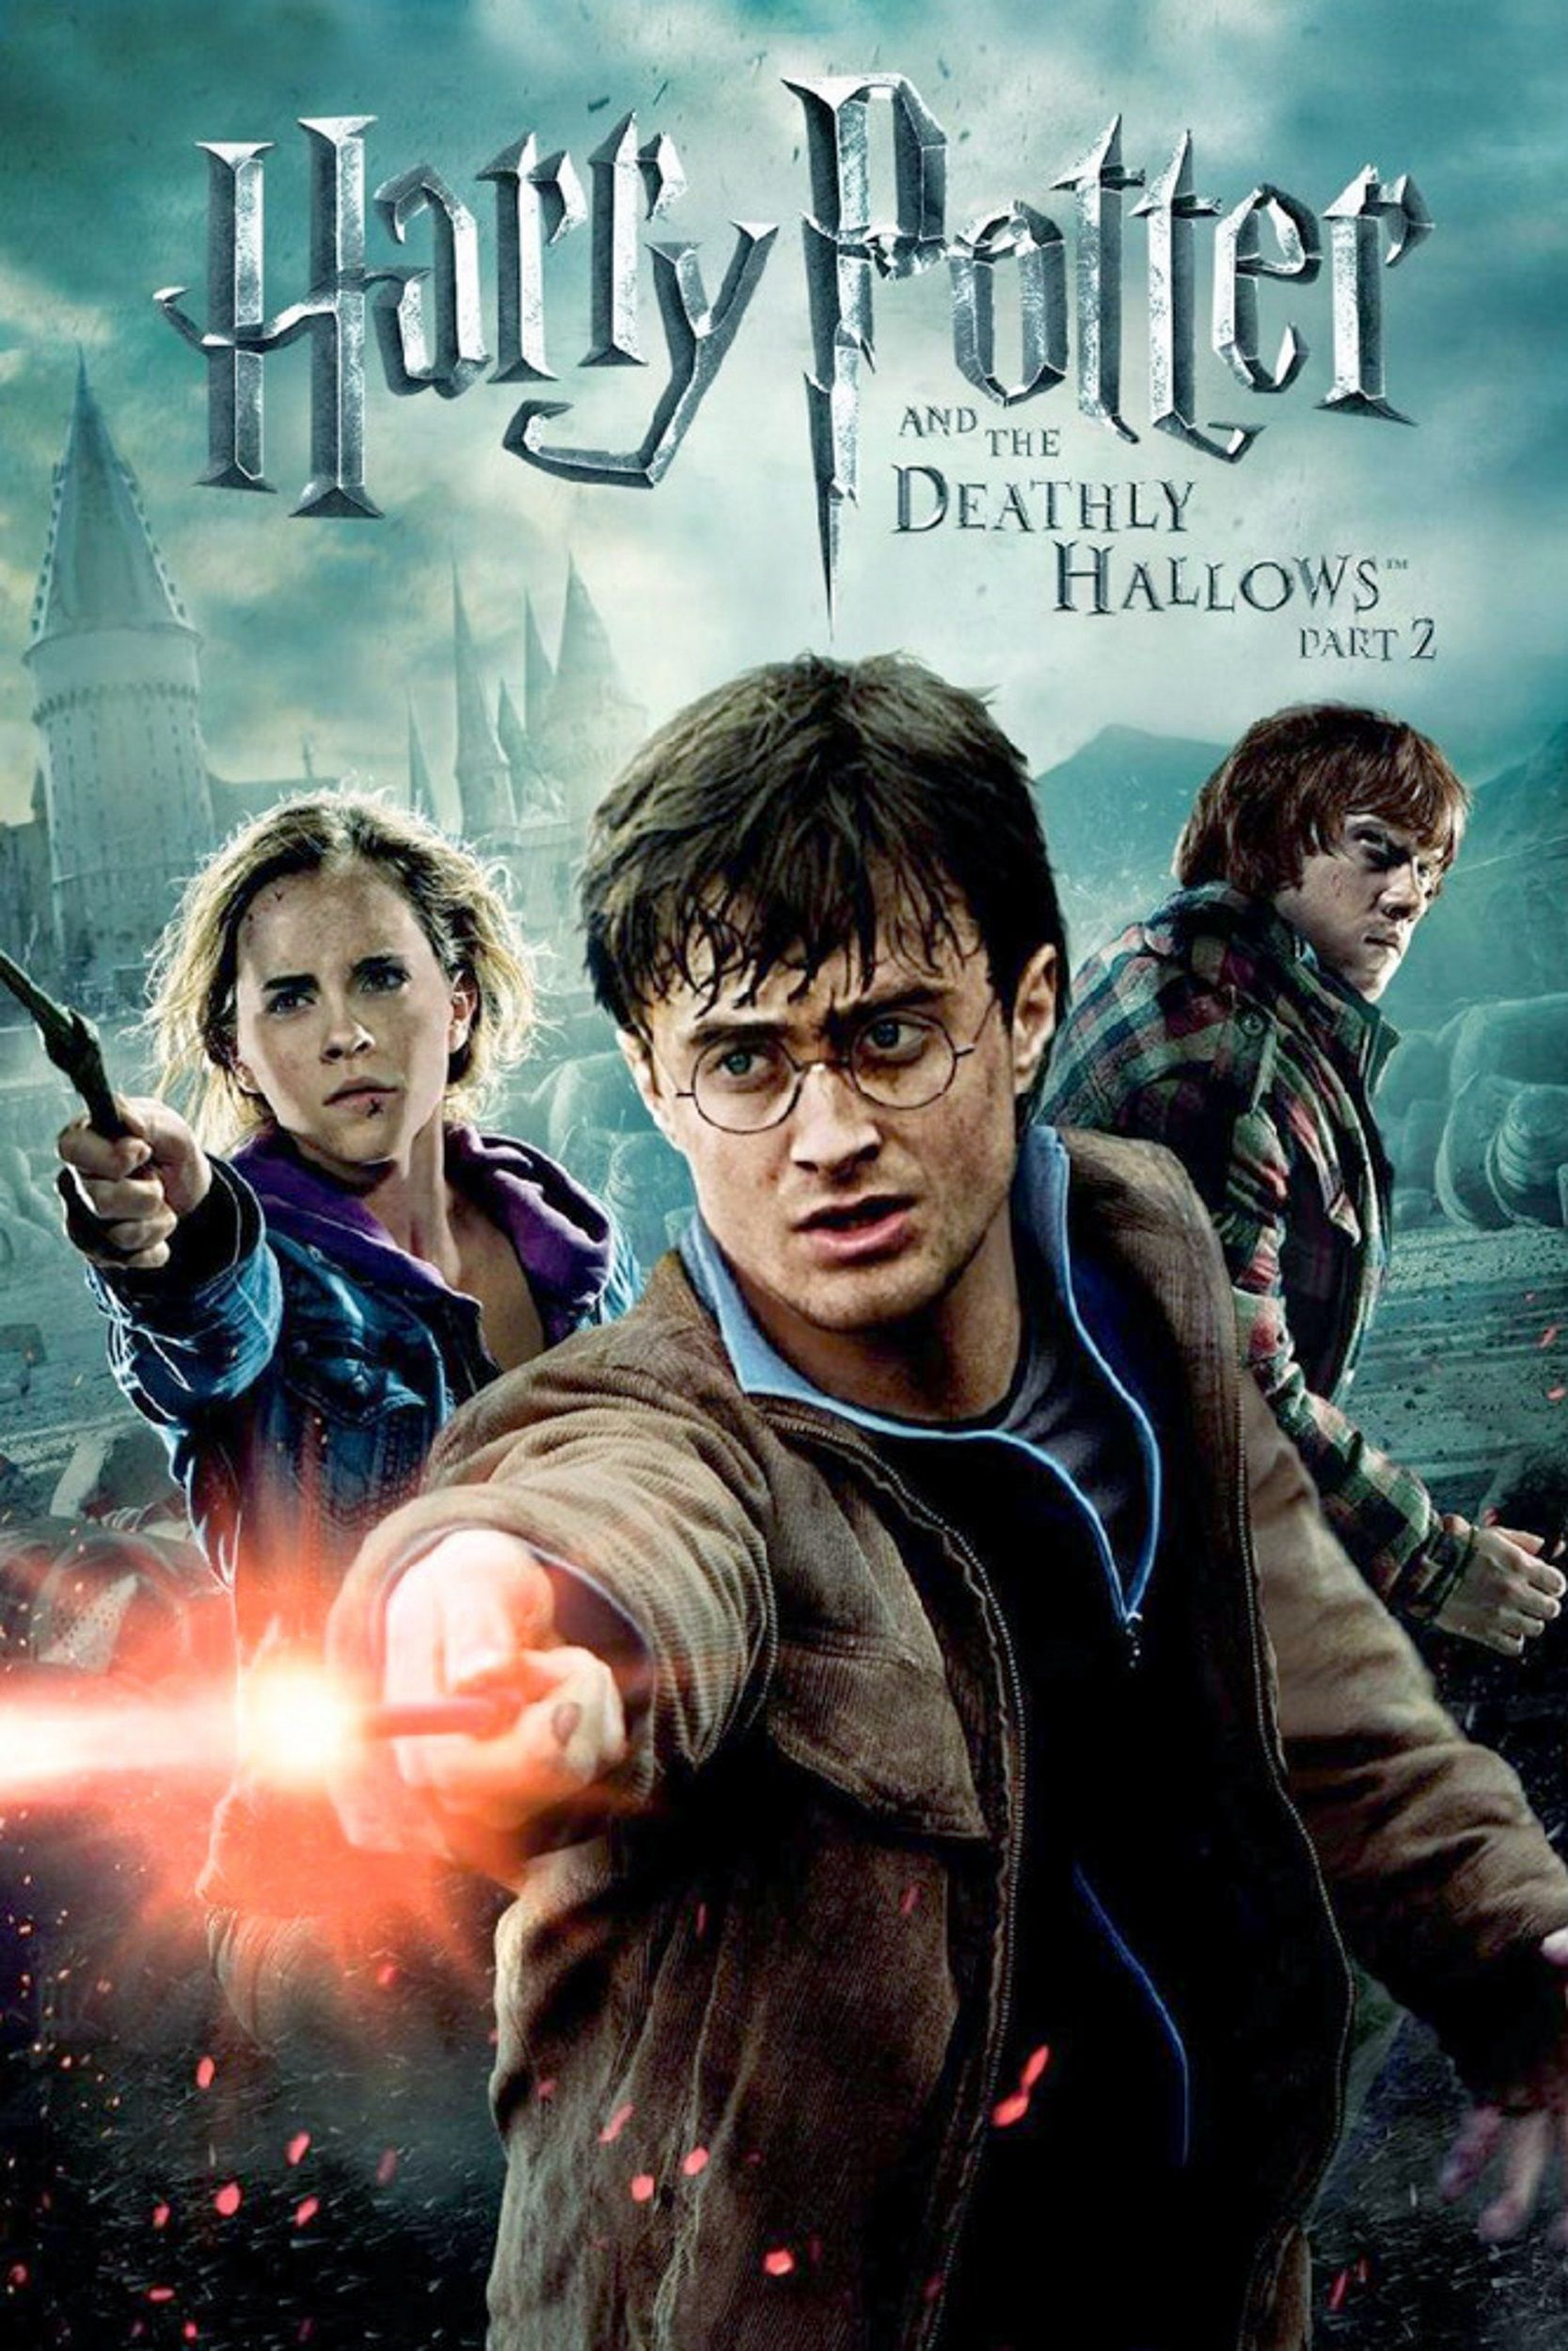 Pin By Printables By Ray On 100 Movies In 2018 Deathly Hallows Part 2 Harry Potter Deathly Hallows Harry Potter Movies